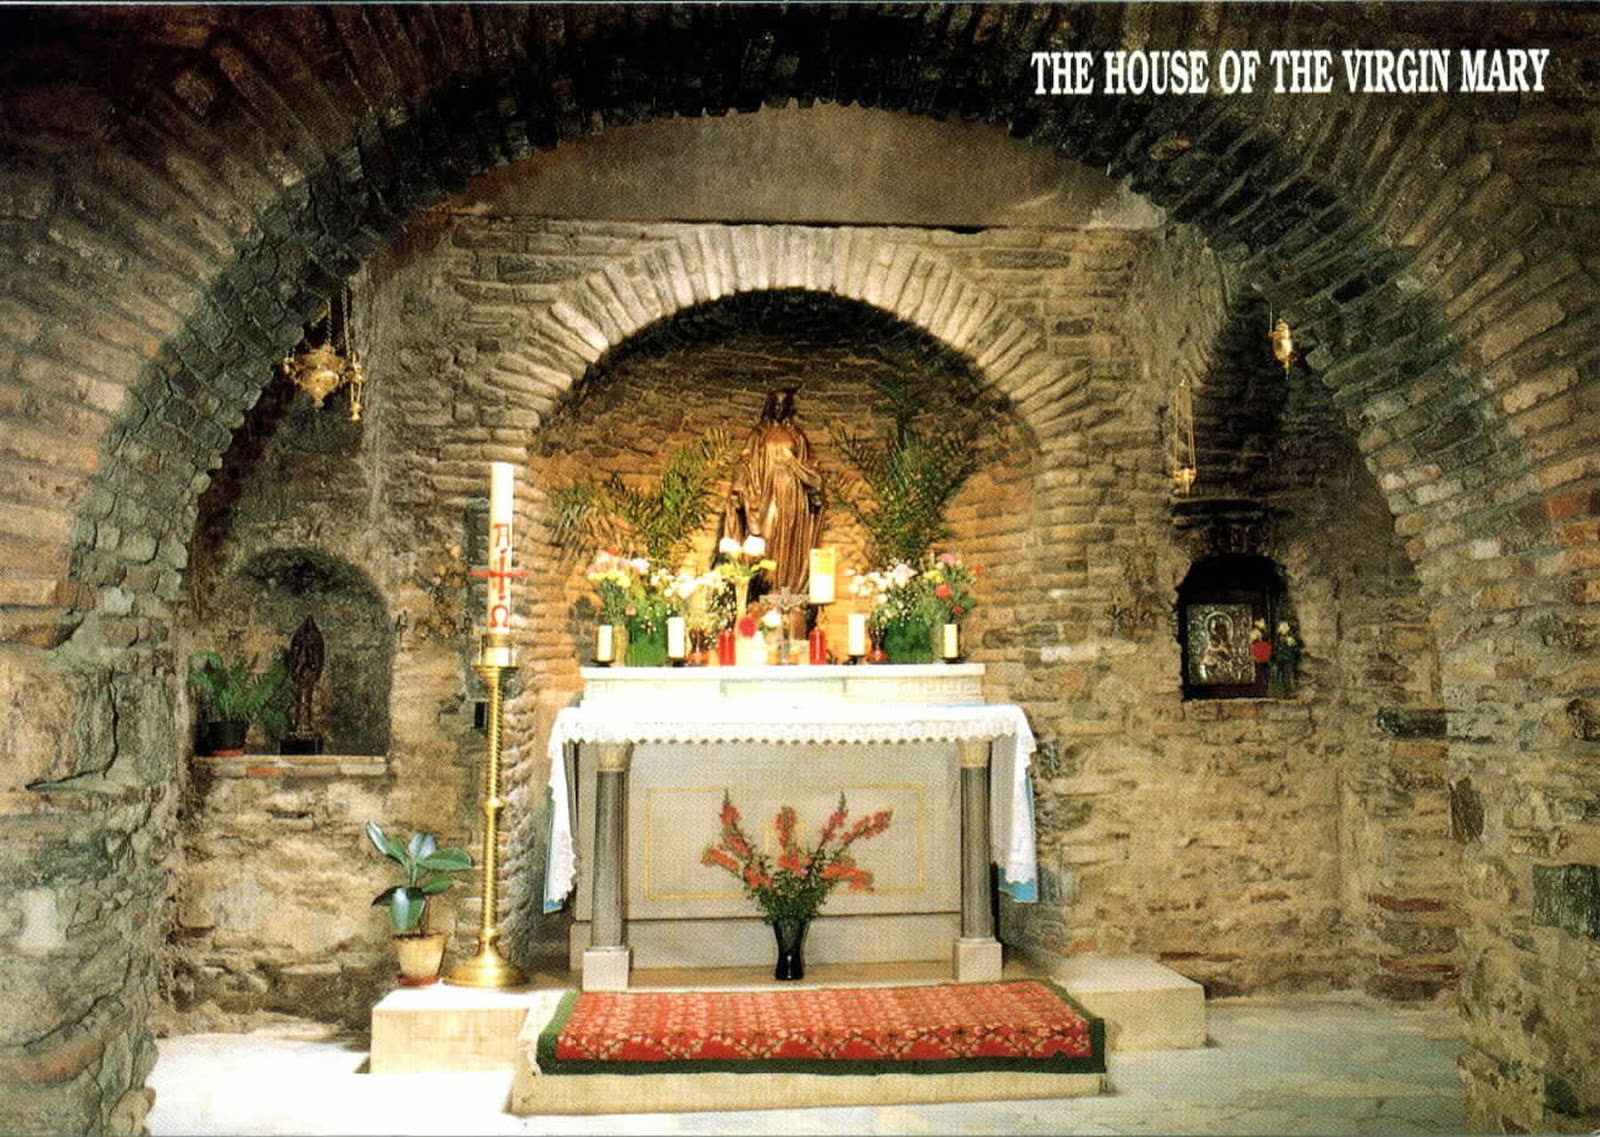 HOUSE OF THE VIRGIN MARY | XAMOWALLPAPERS.BLOGSPOT.COM